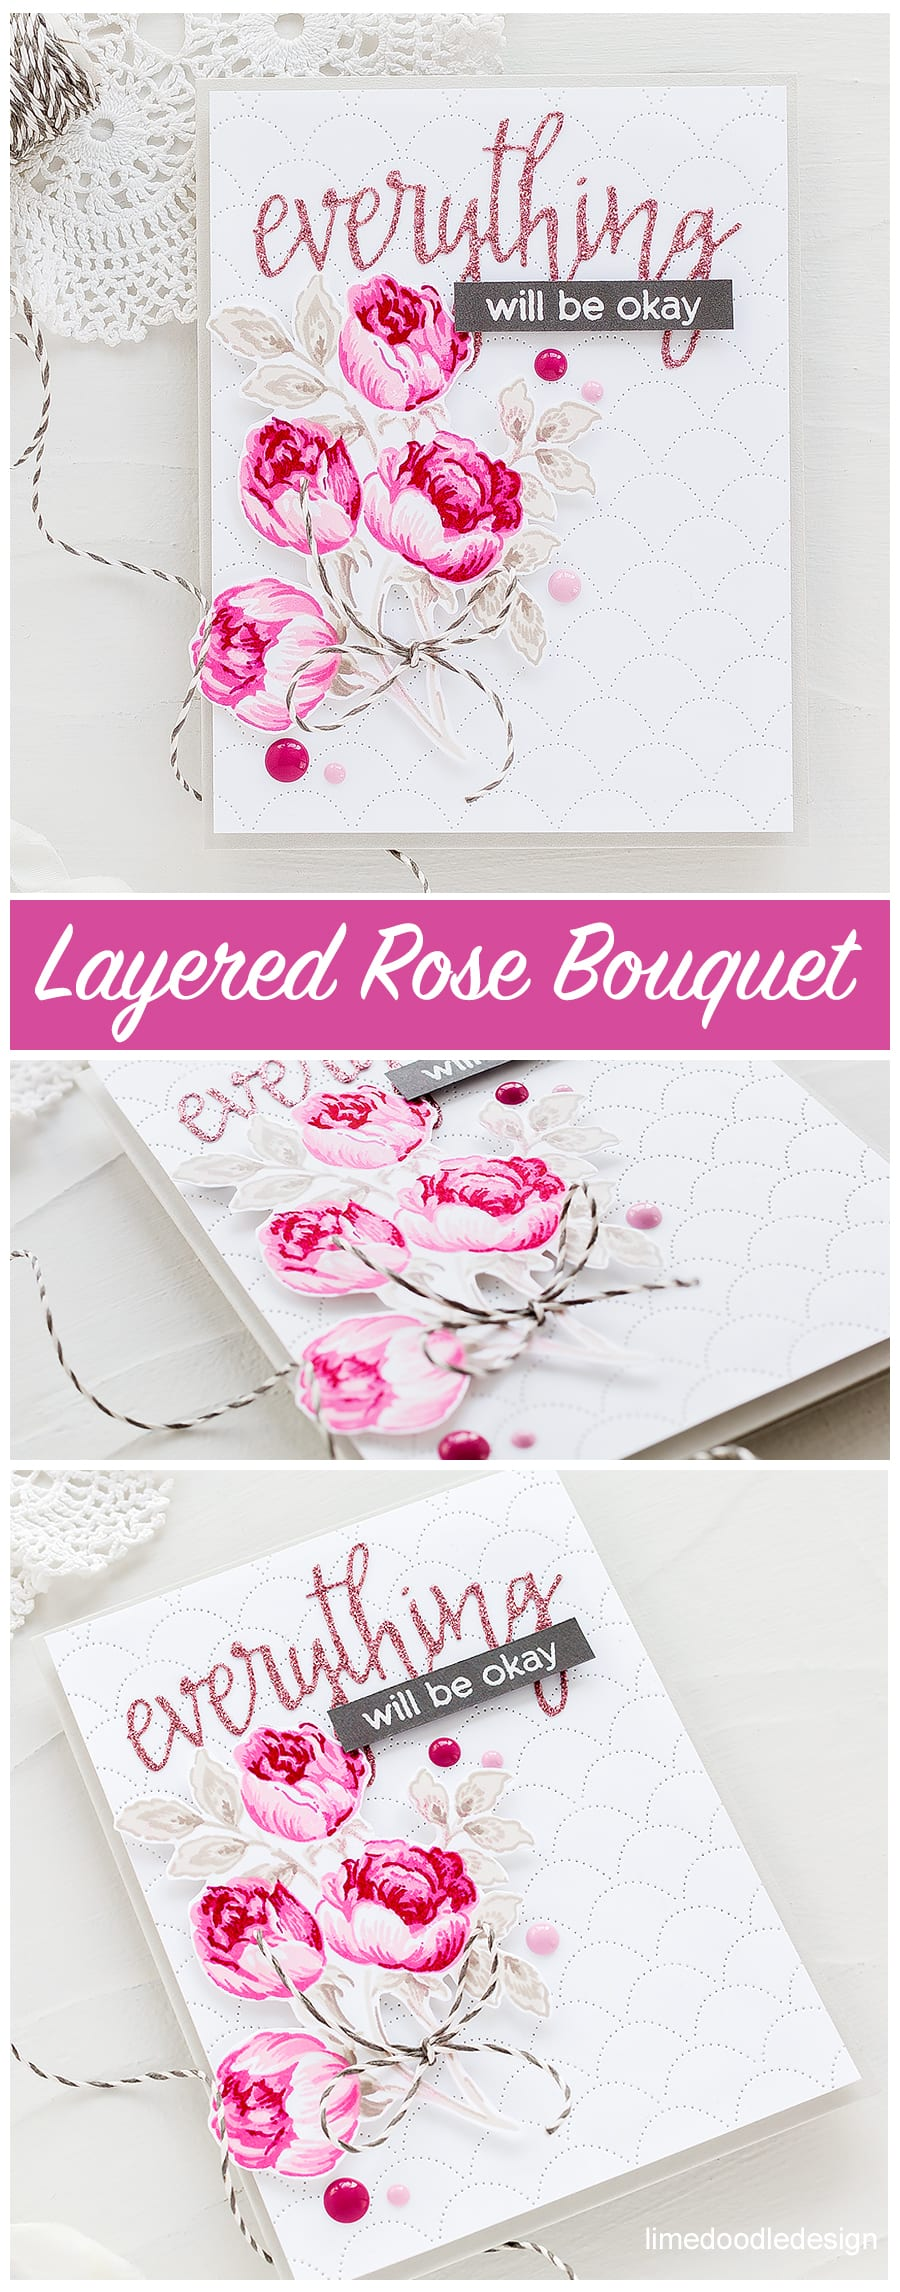 Video tutorial - multi layered rose handmade card by Debby Hughes. Find out more http://limedoodledesign.com/2018/03/video-altenew-march-stamp-die-release-blog-hop-giveaway/